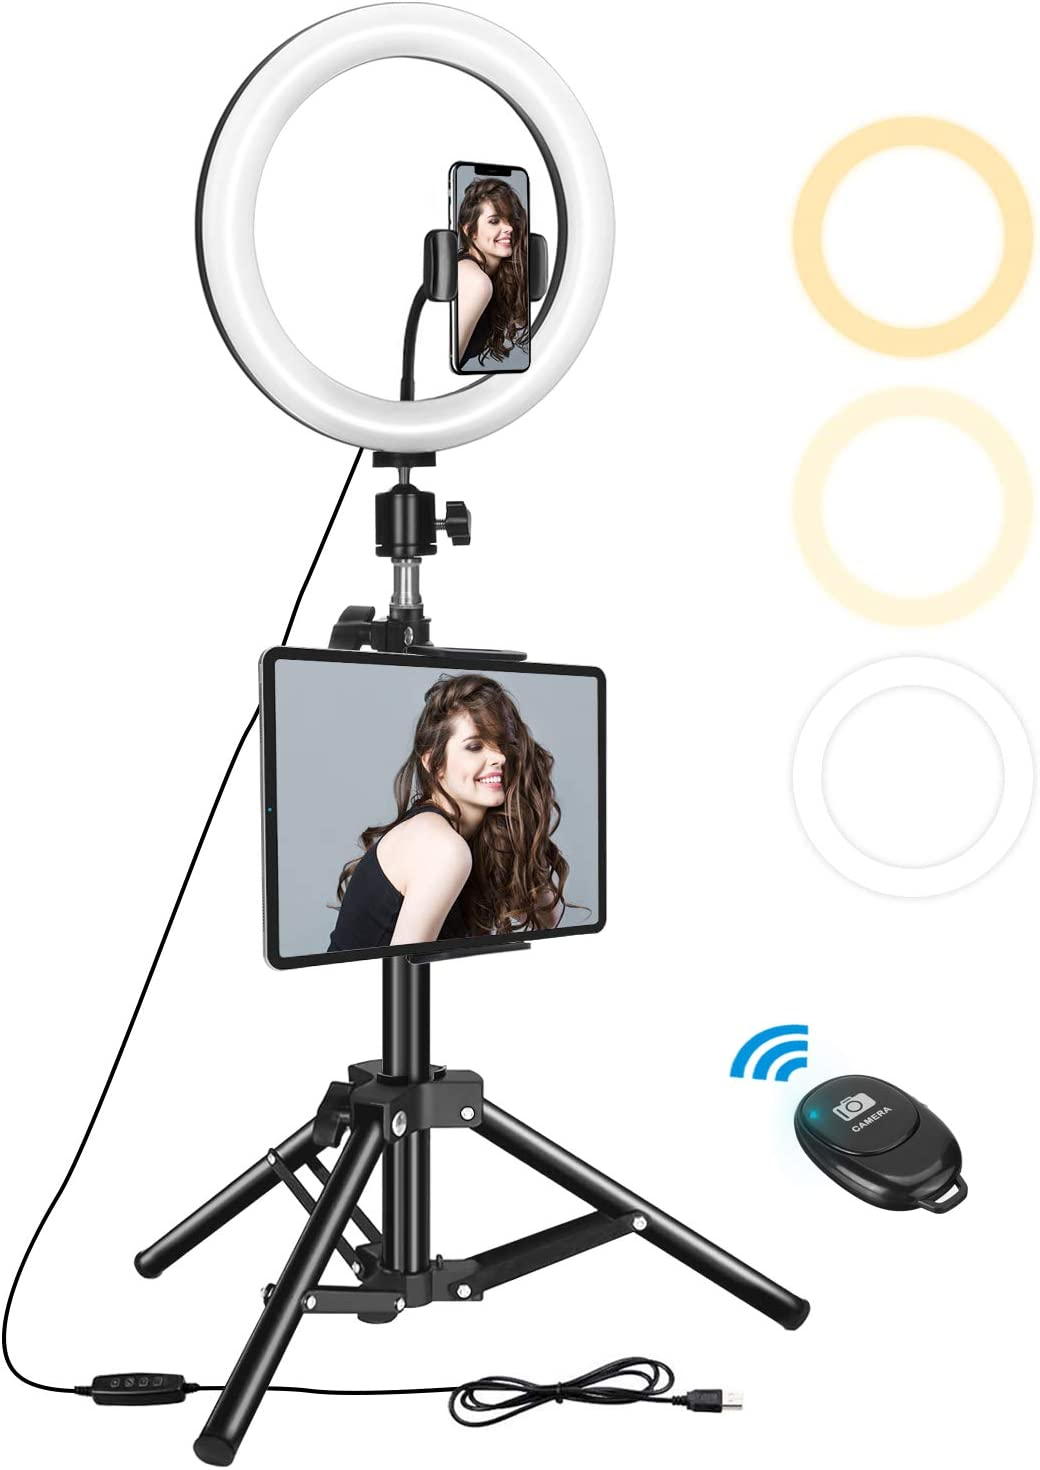 Dual Phone Holders 3 Light Modes Compatible with iPhone 10 Inch LED Selfie Ring Light for Video Conference /& Live Stream Samsung 10 Levels Pixel Etc Meifigno 10 Ring Light with Tripod Stand